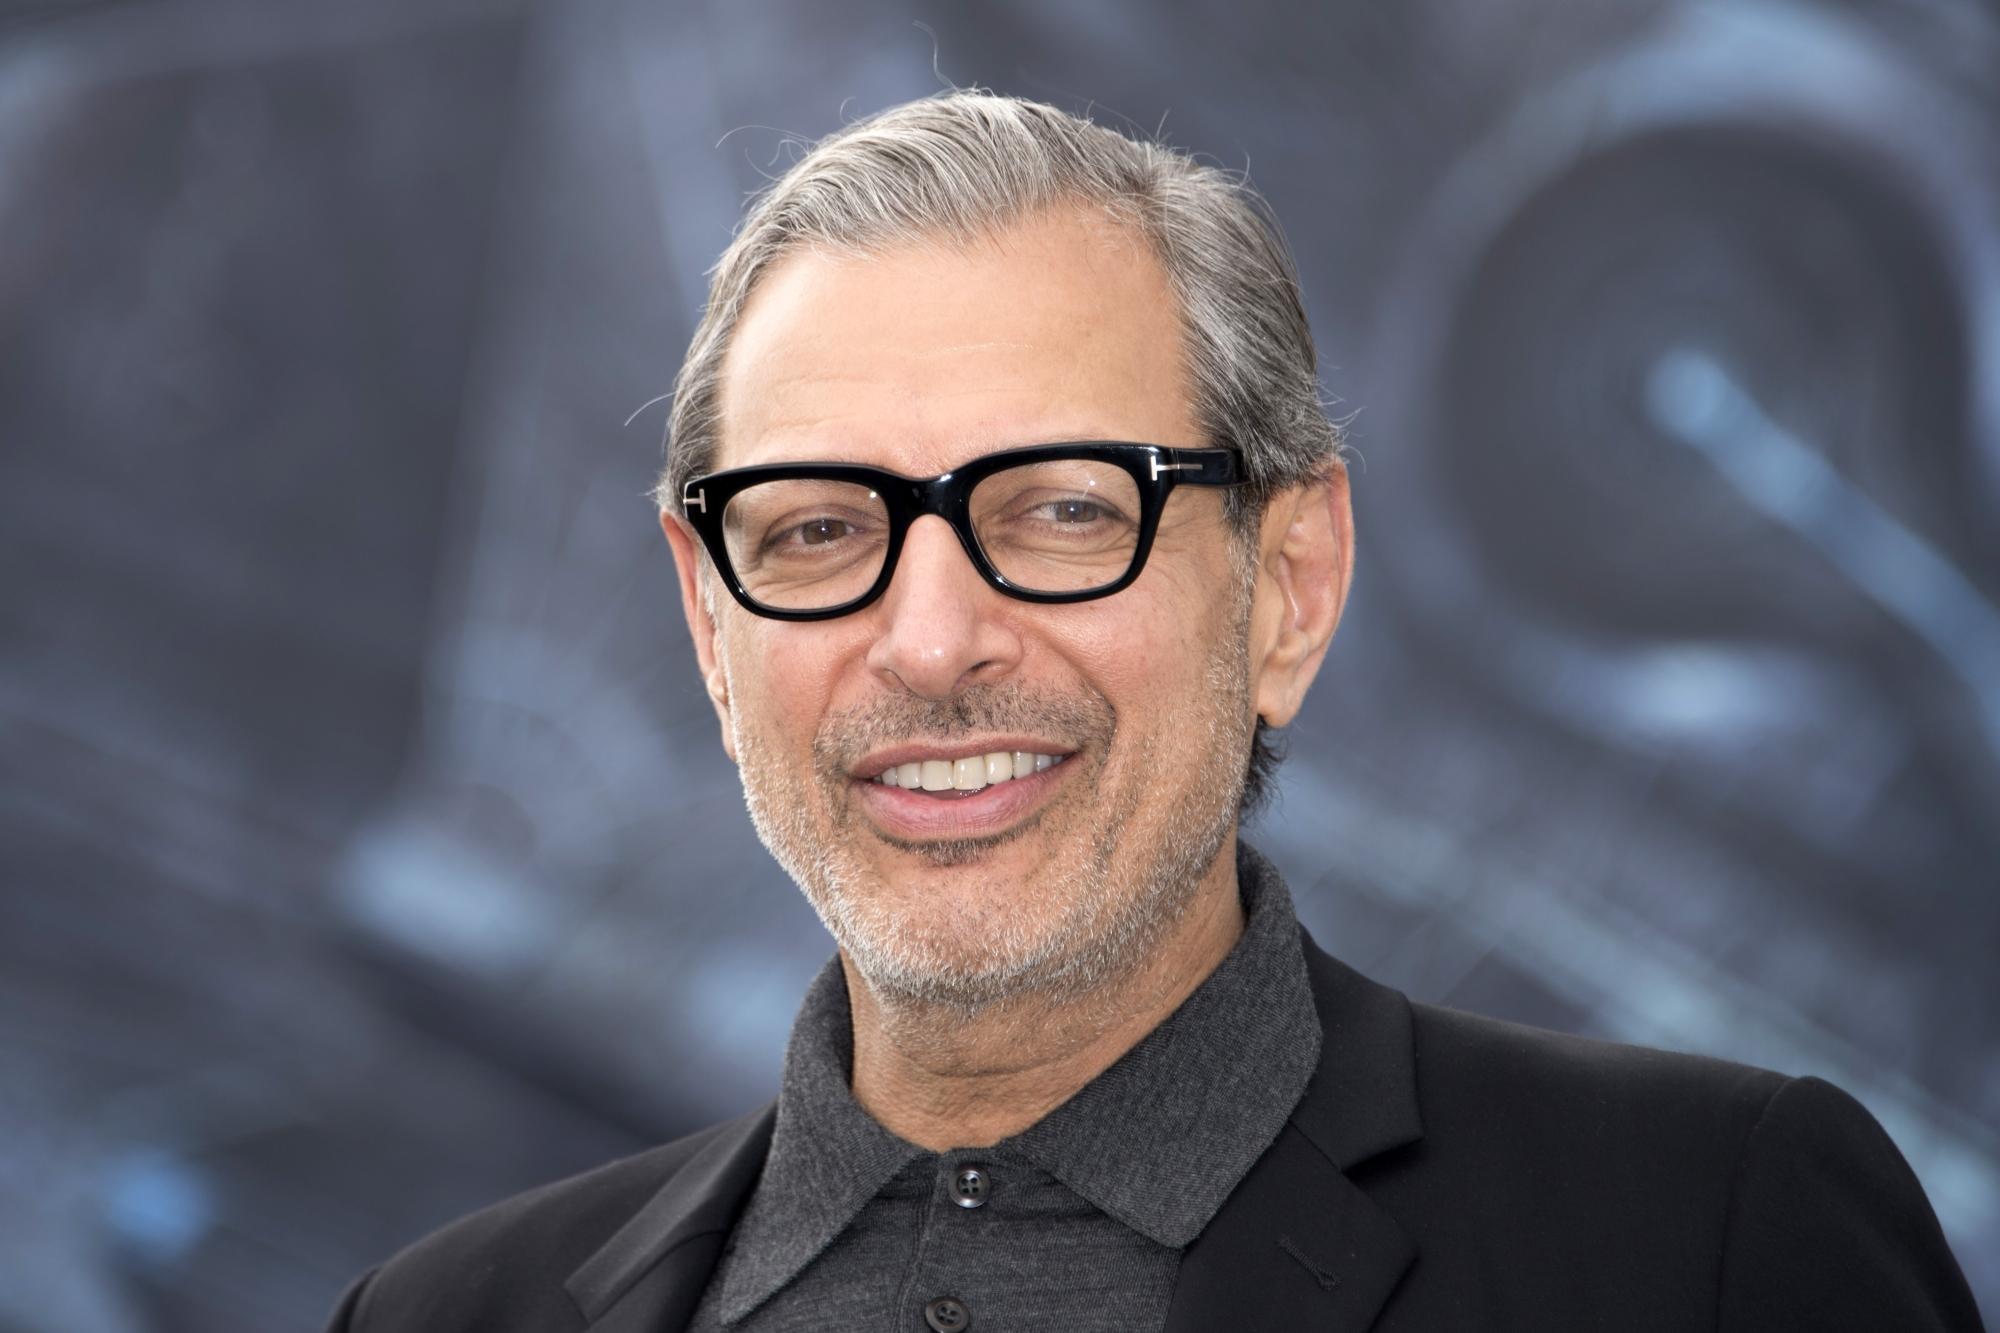 Jeff Goldblum rejoint le casting de Jurassic World 2 !